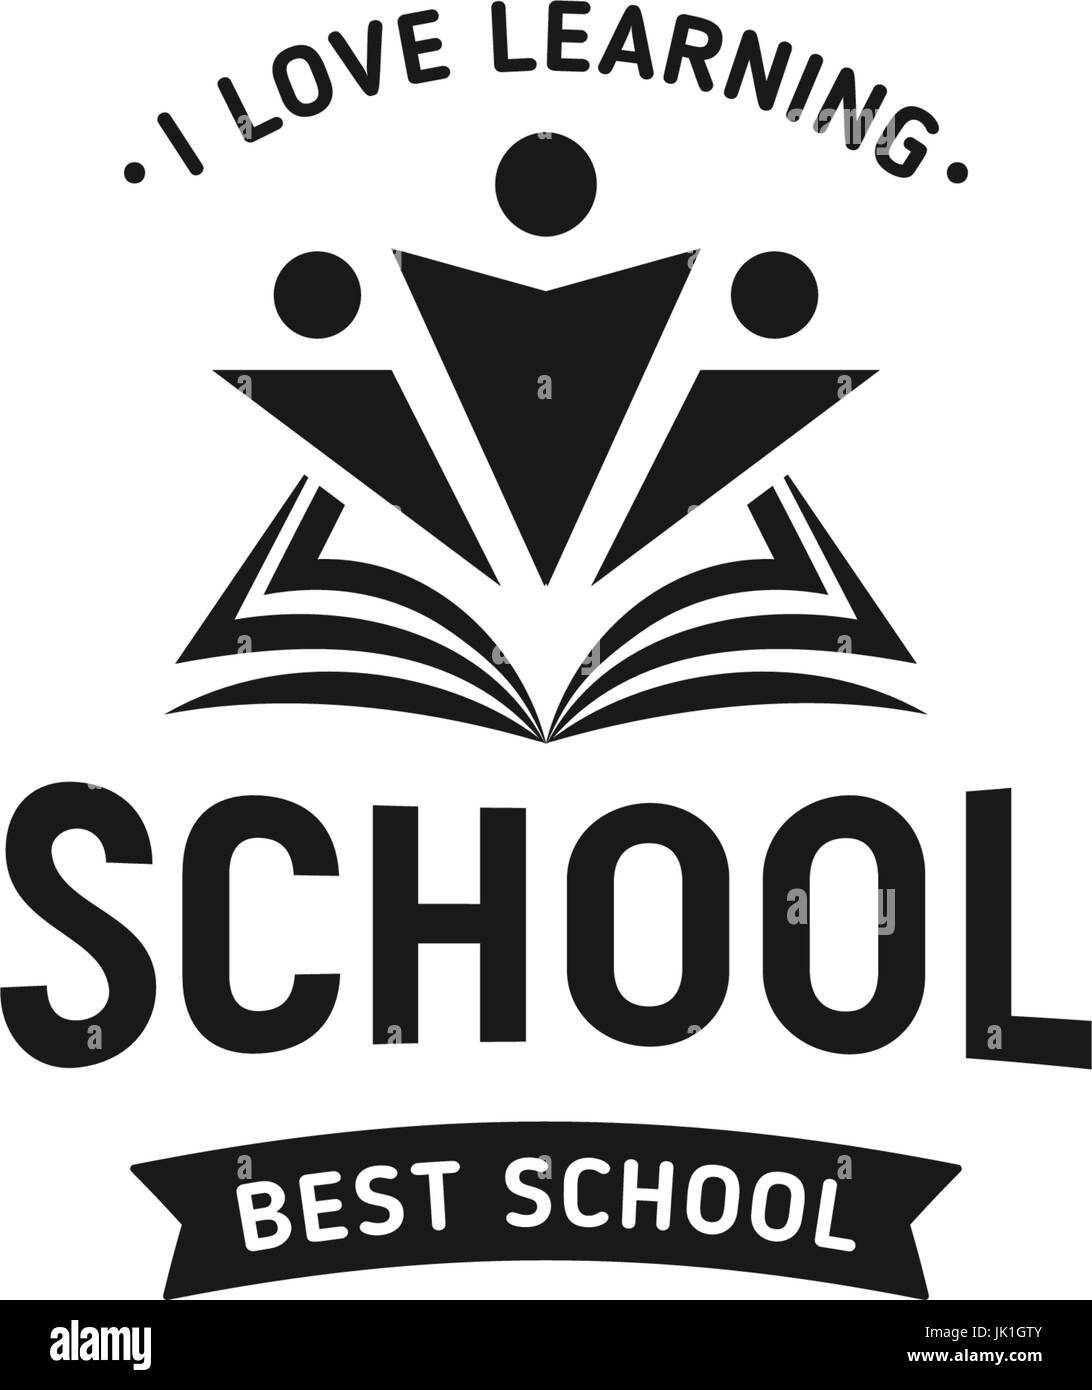 School logo vector. Monochrome vintage style design educational learning sign. Back to school, university, college - Stock Image